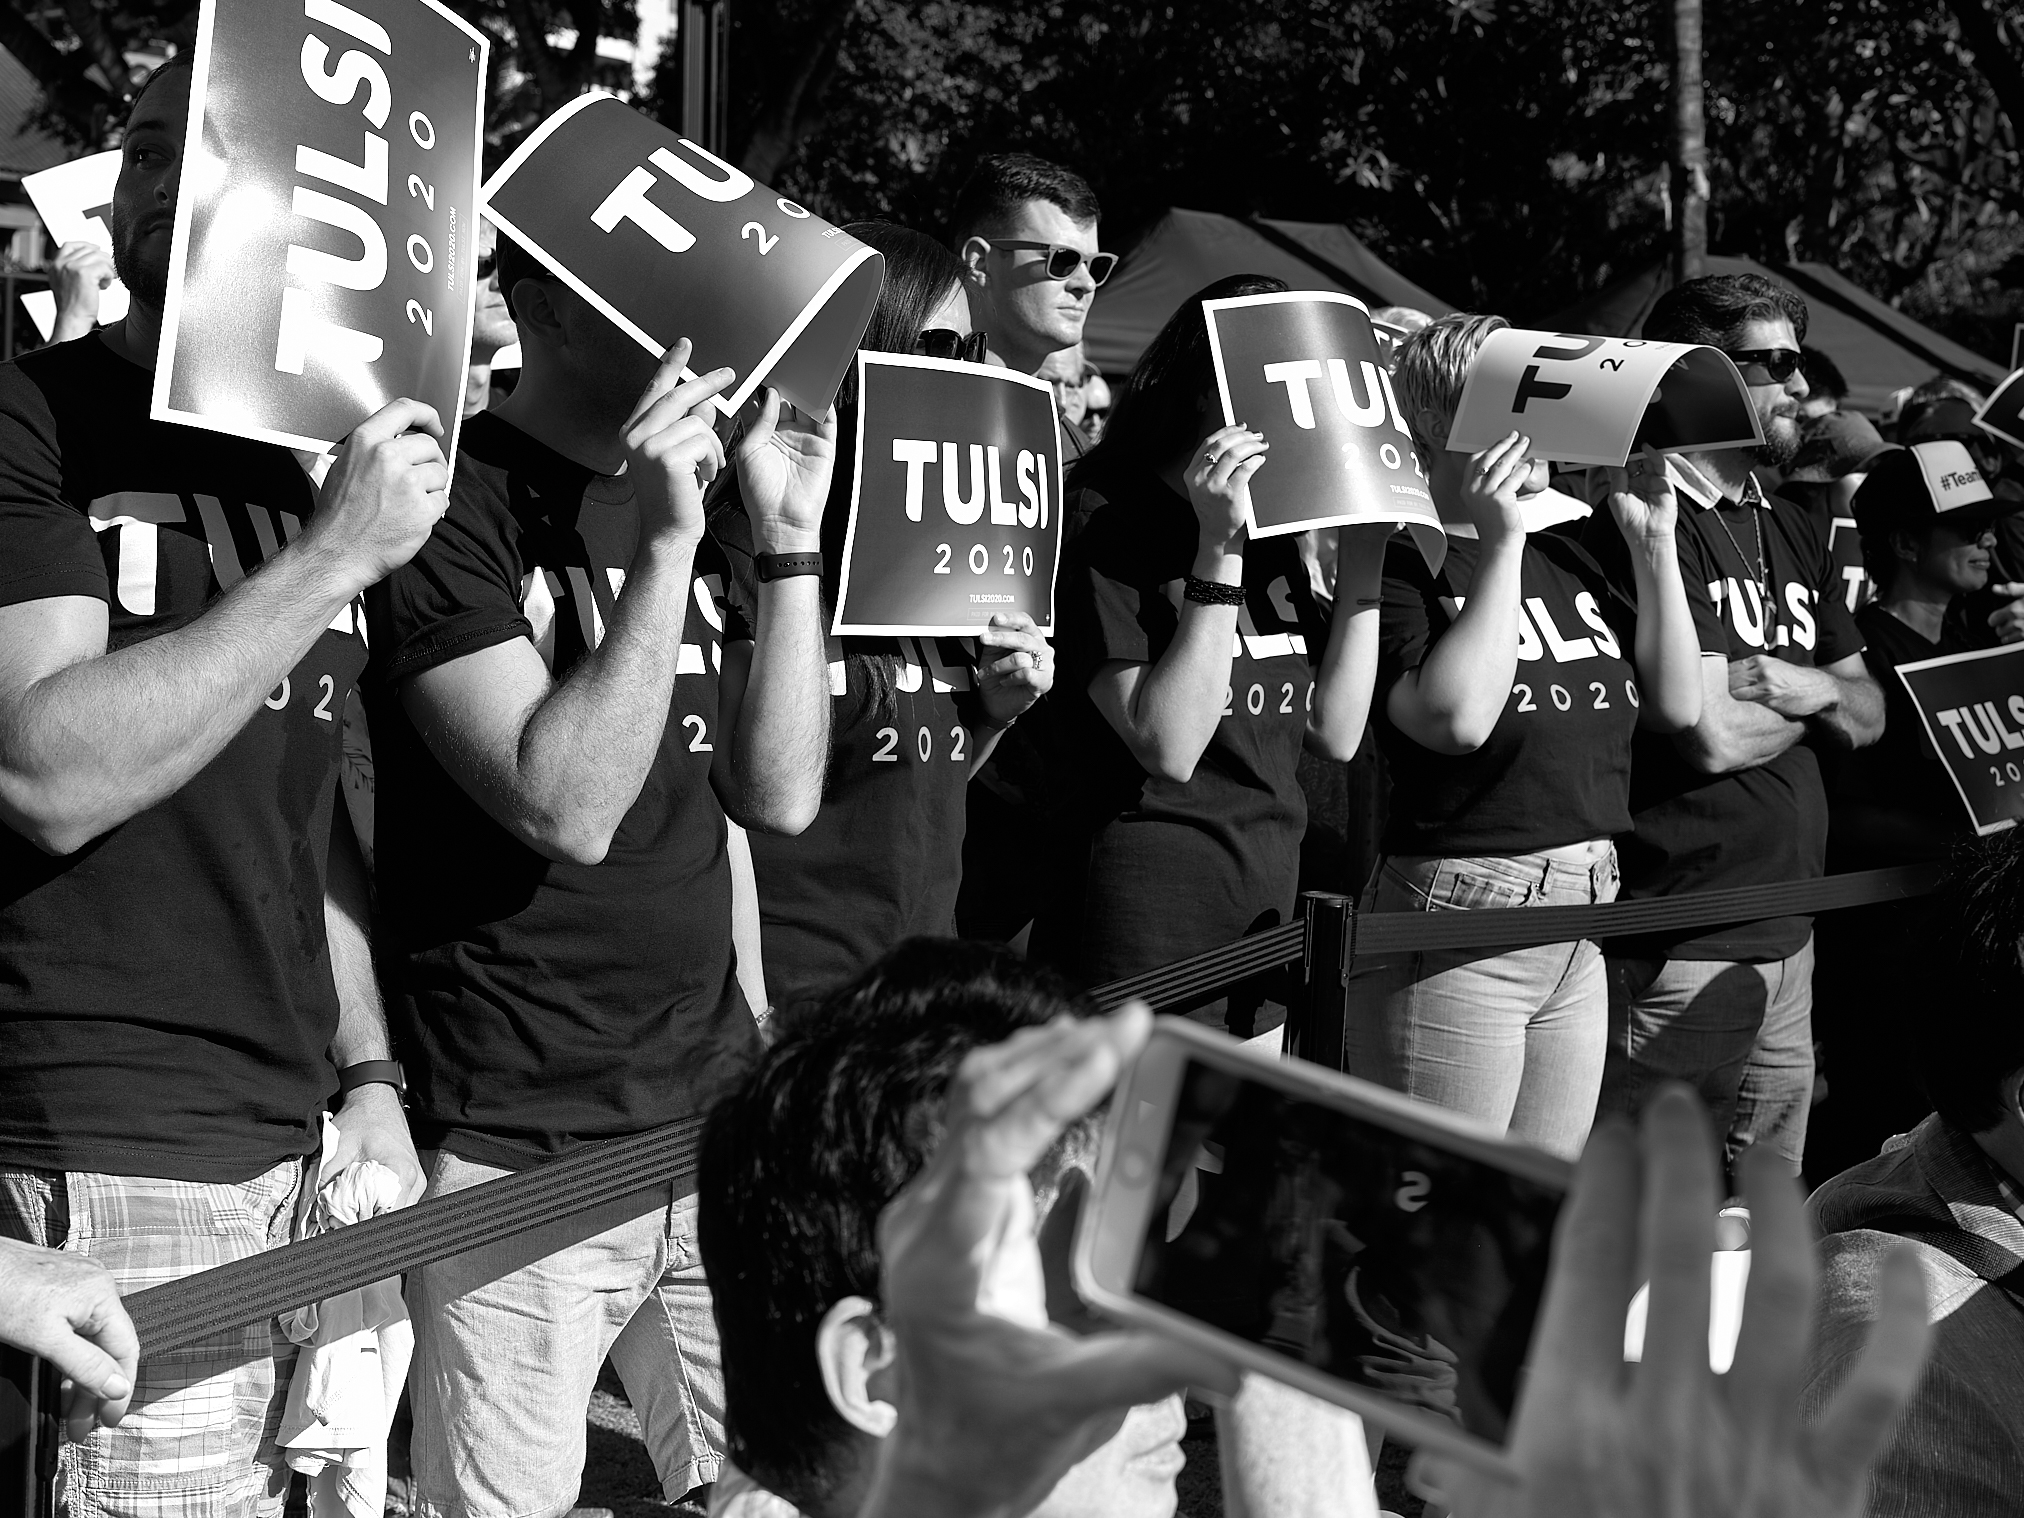 Tulsi 2020 Campaign Kickoff Rally by Peter Adams.